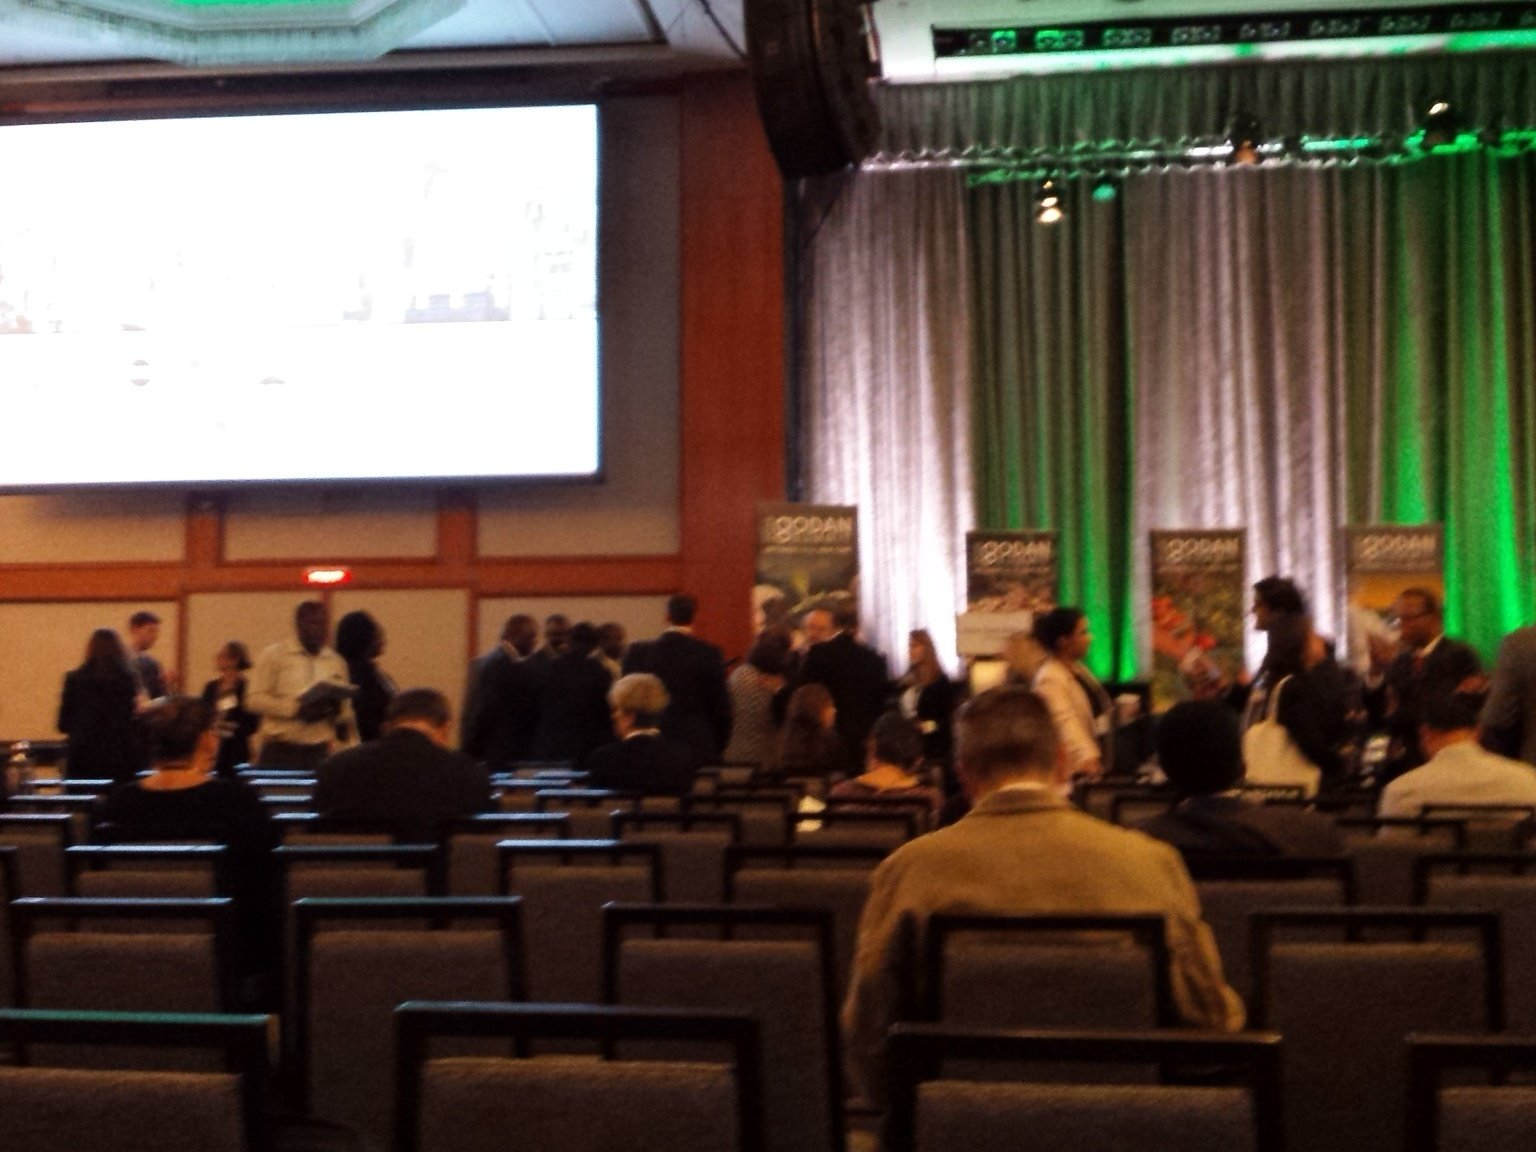 #GODANSummit2016 about to get going... https://t.co/CiTnyq24sP